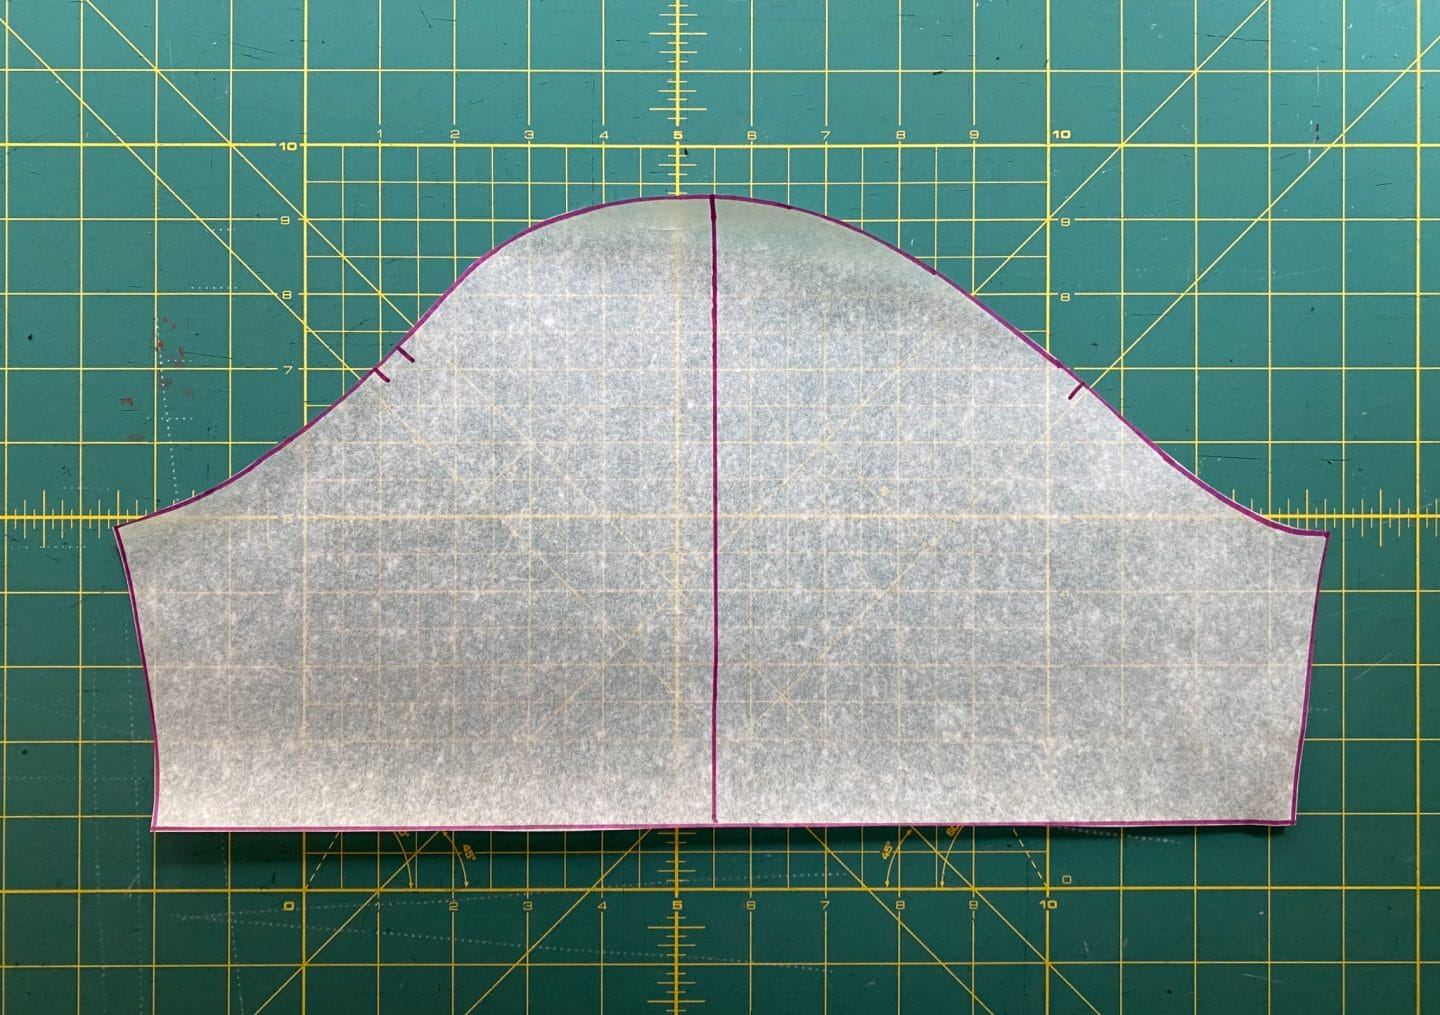 Image of the sleeve pattern with a pink line from the center notch all the way down on a green background.